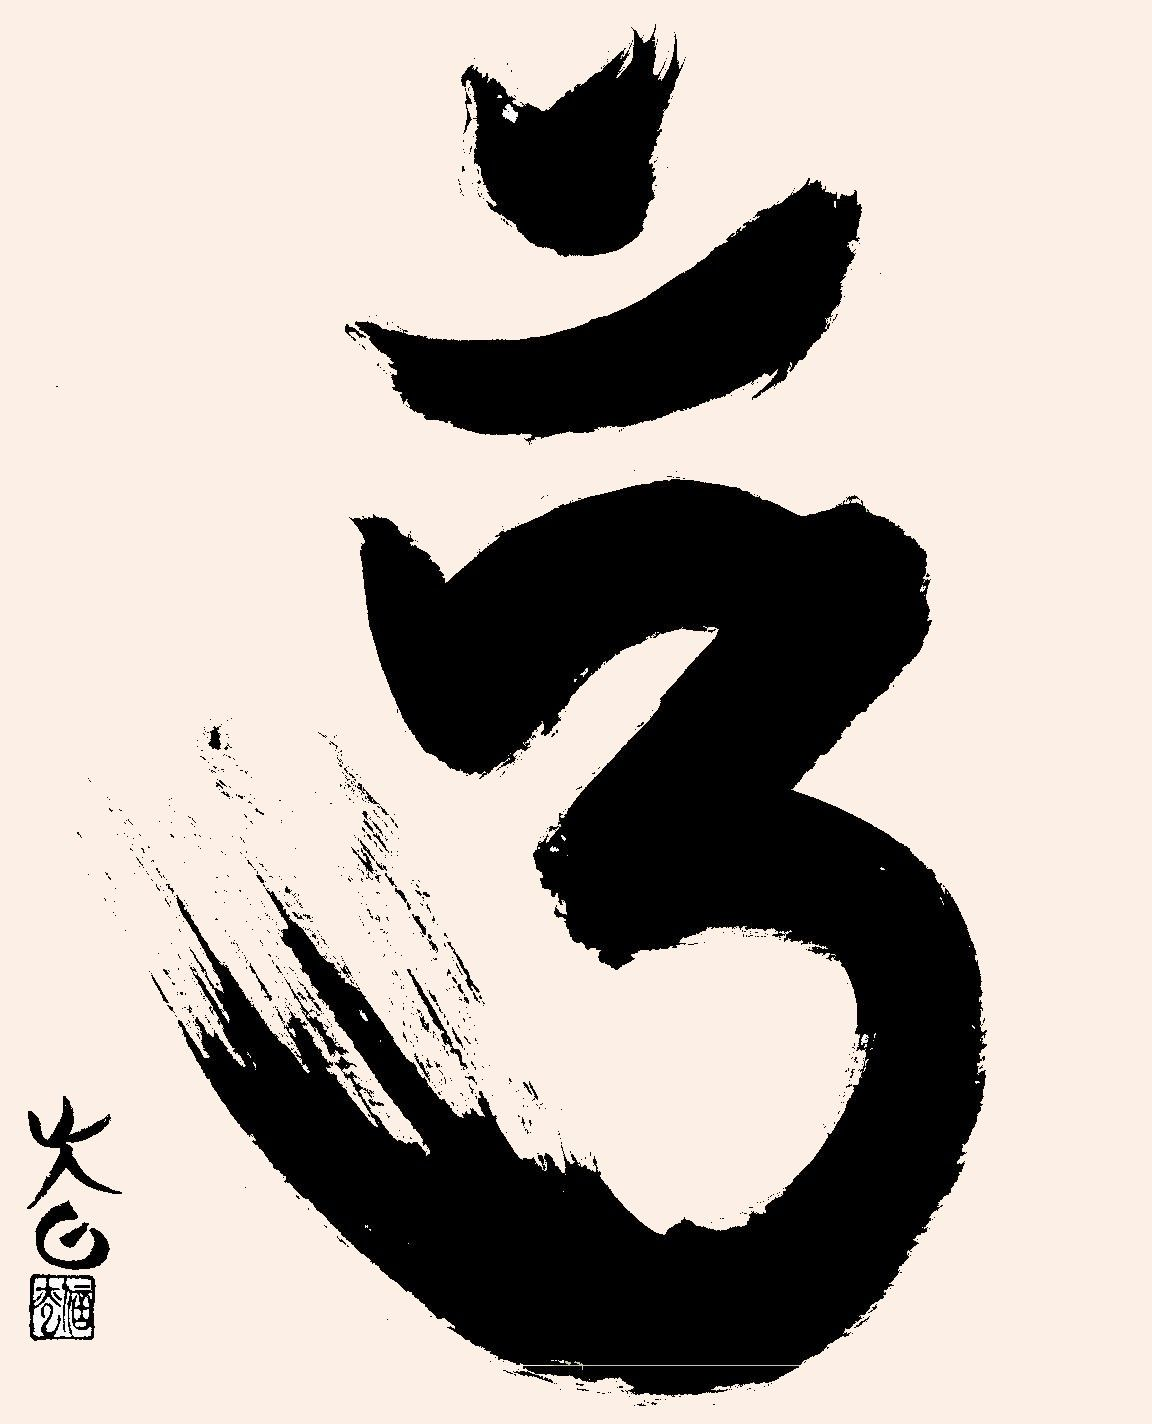 Aum the sacred syllable standing for change and changelessness aum the sacred syllable standing for change and changelessness biocorpaavc Image collections